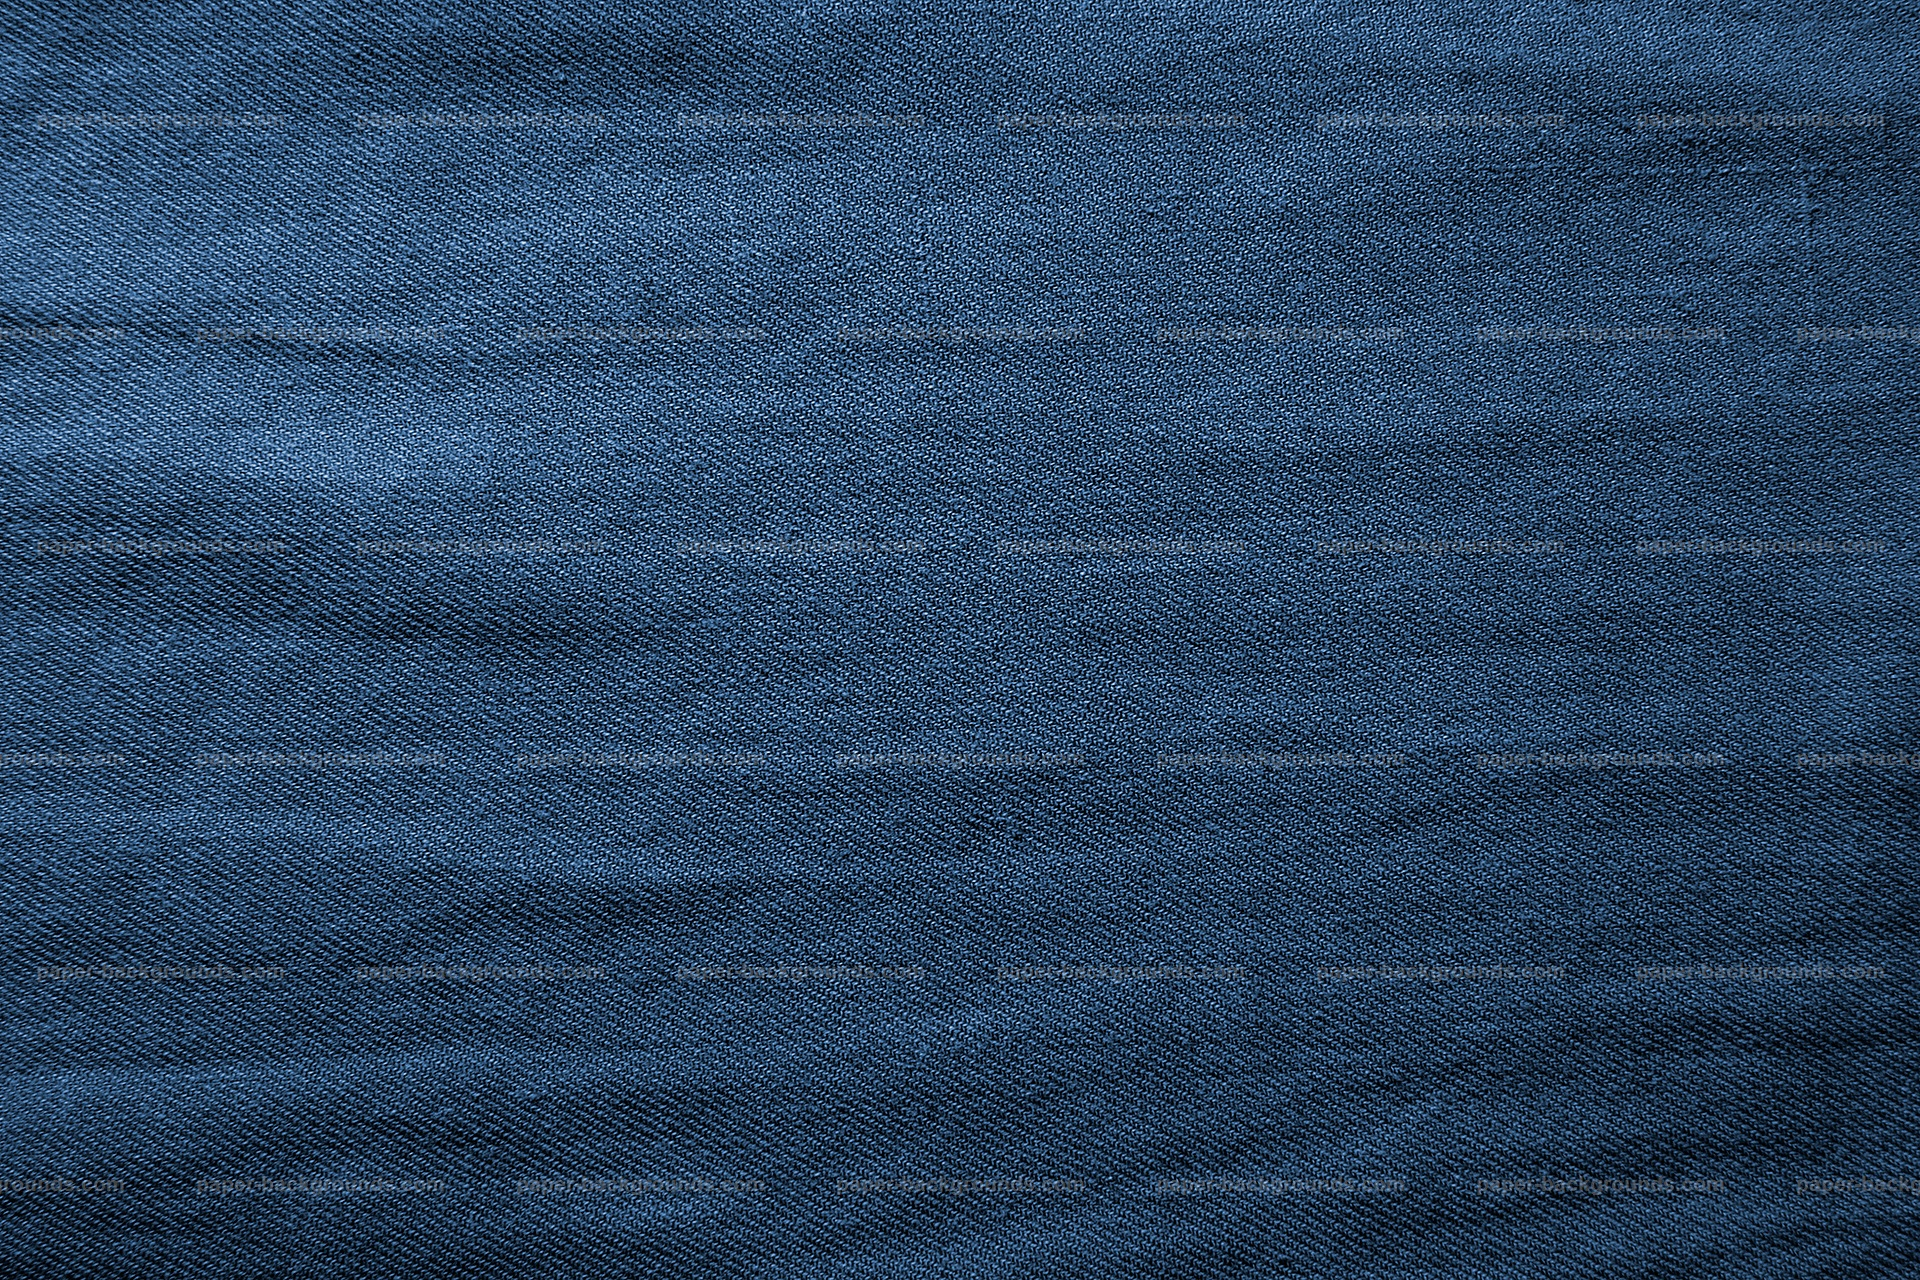 Wrinkled Blue Jeans Texture HD